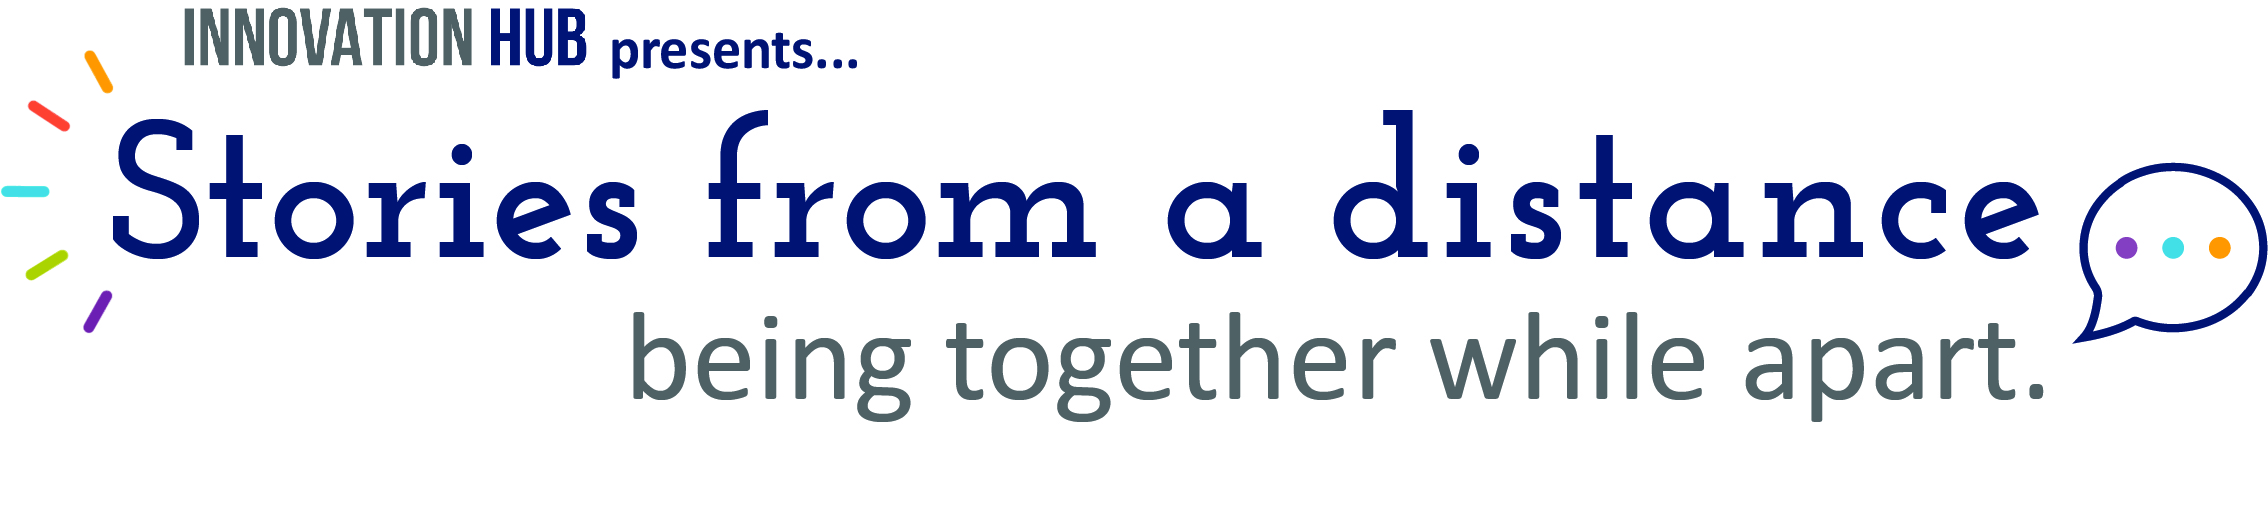 "Stories from a Distance logo, reading ""Stories from a distance, being together while being apart"", with the speech bubble with 3 dots."